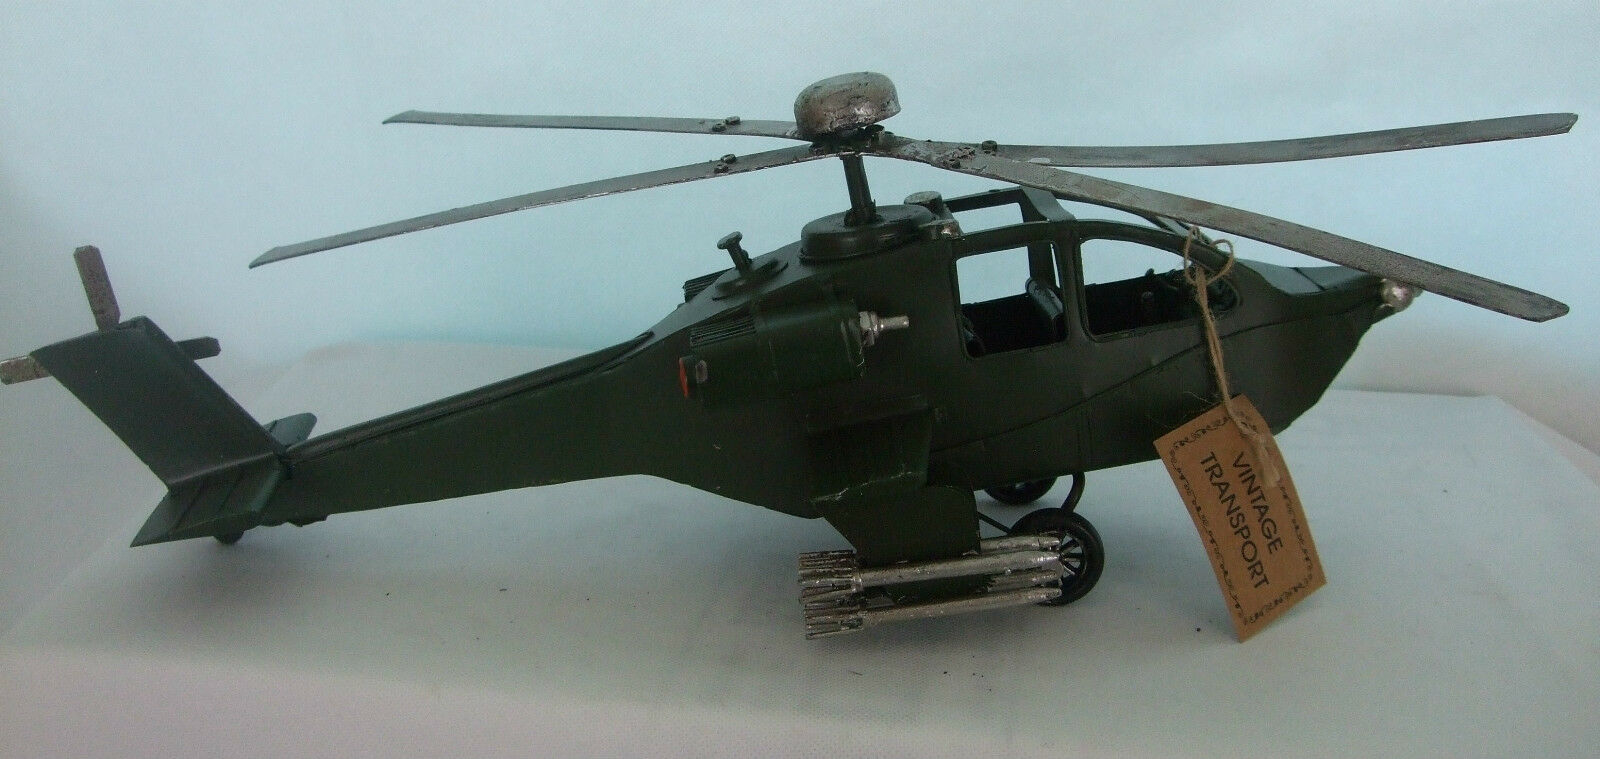 Tin Plate Model of a Vintage large Army Helicopter  Green  Ornament  Gift Boxed